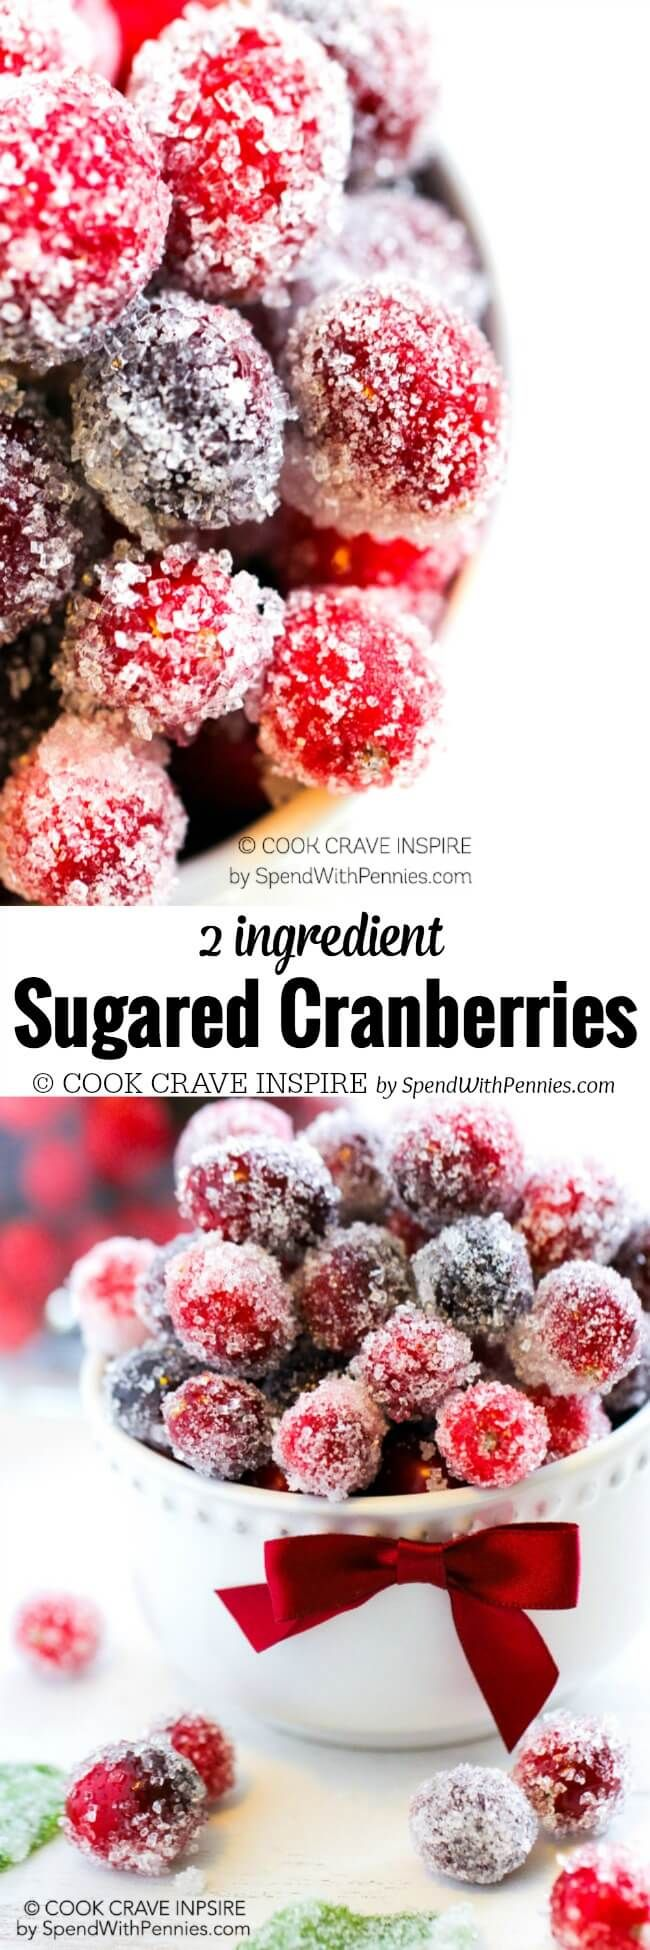 Slow Cooker: Sugared Cranberries (2 Ingredients) - Spend With P...